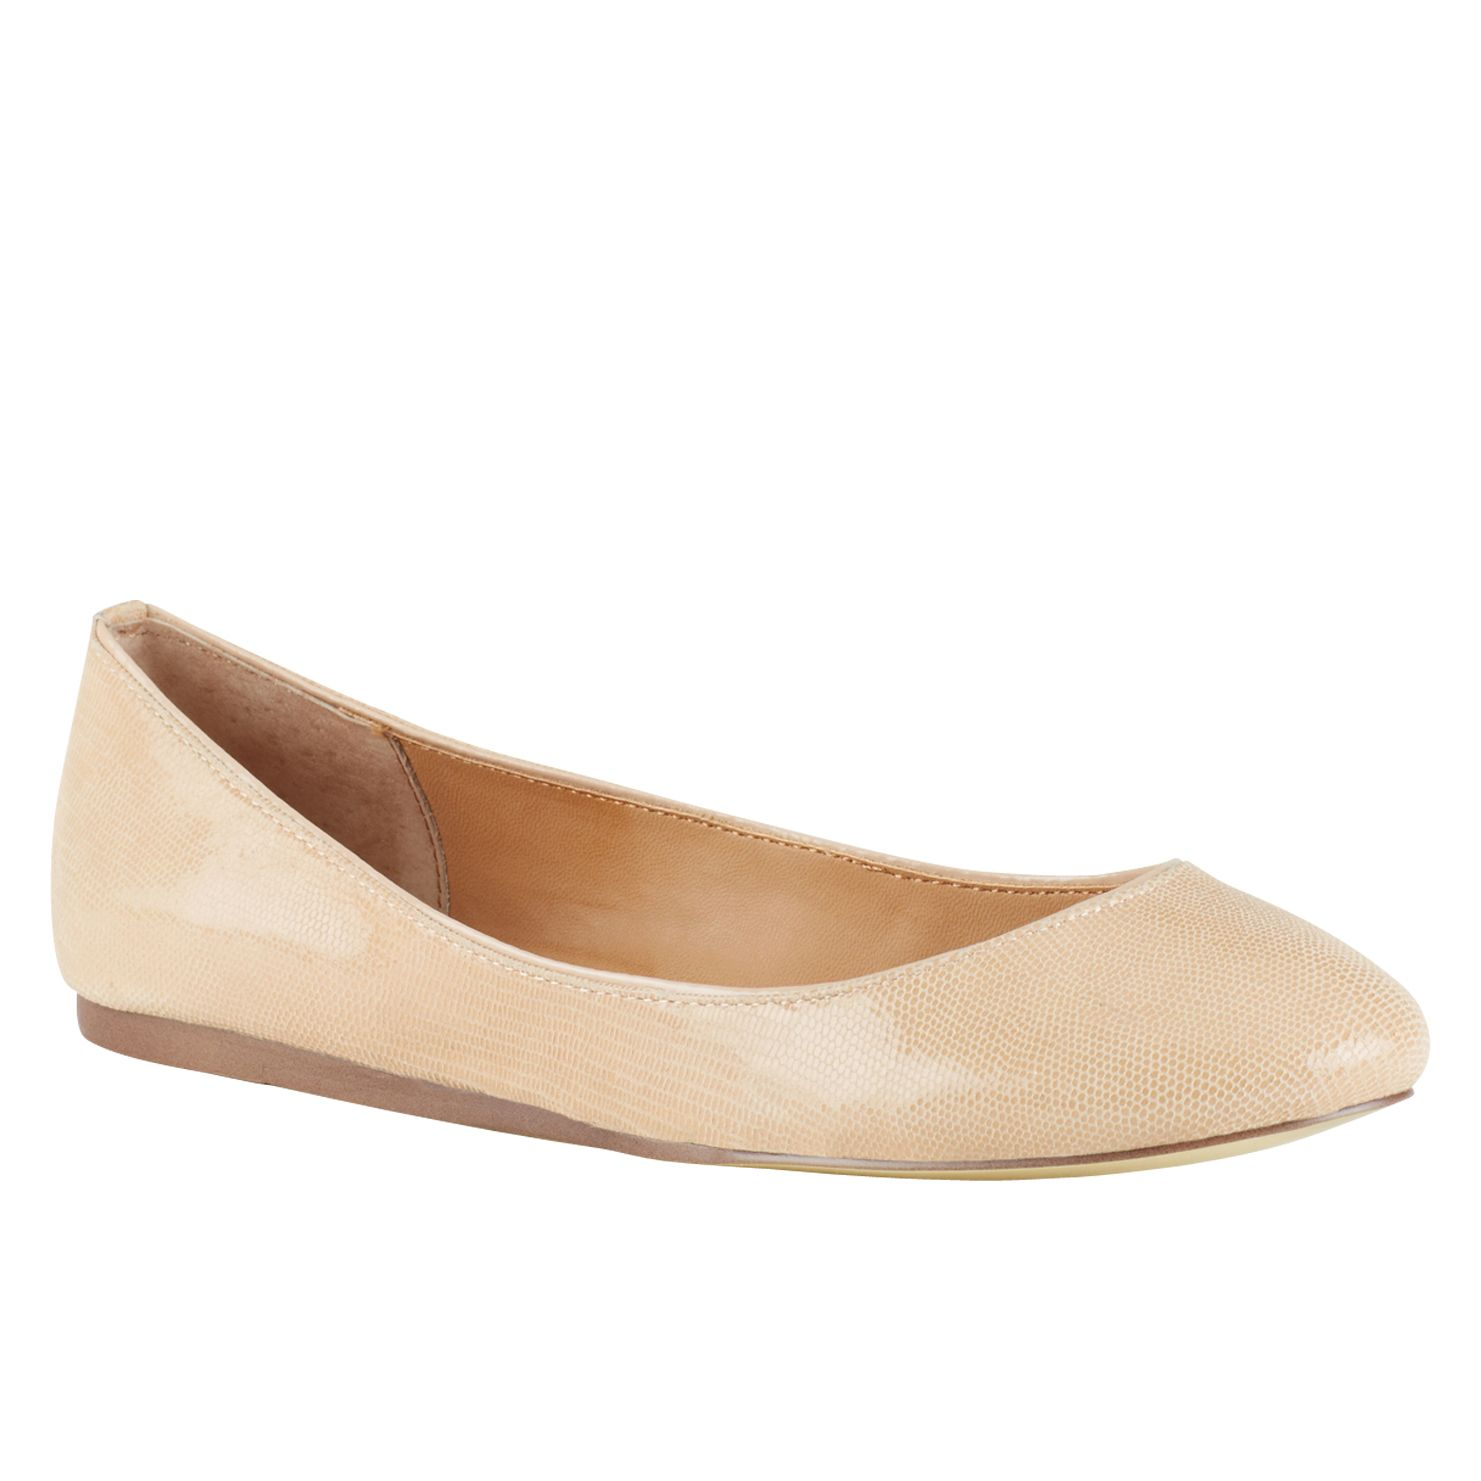 Etelanna almond toe pump shoes